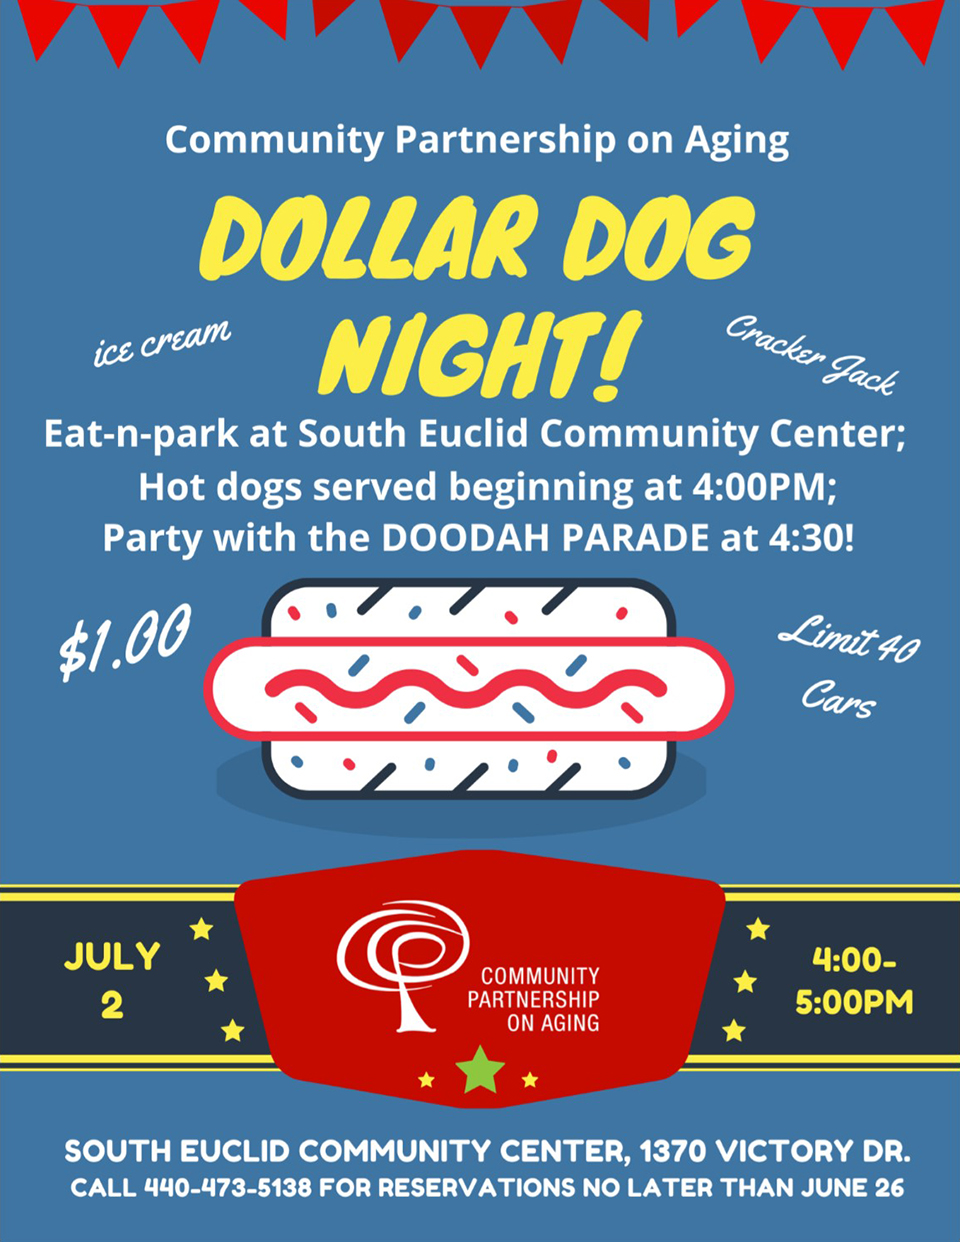 CPA Dollar Dog Night flier.